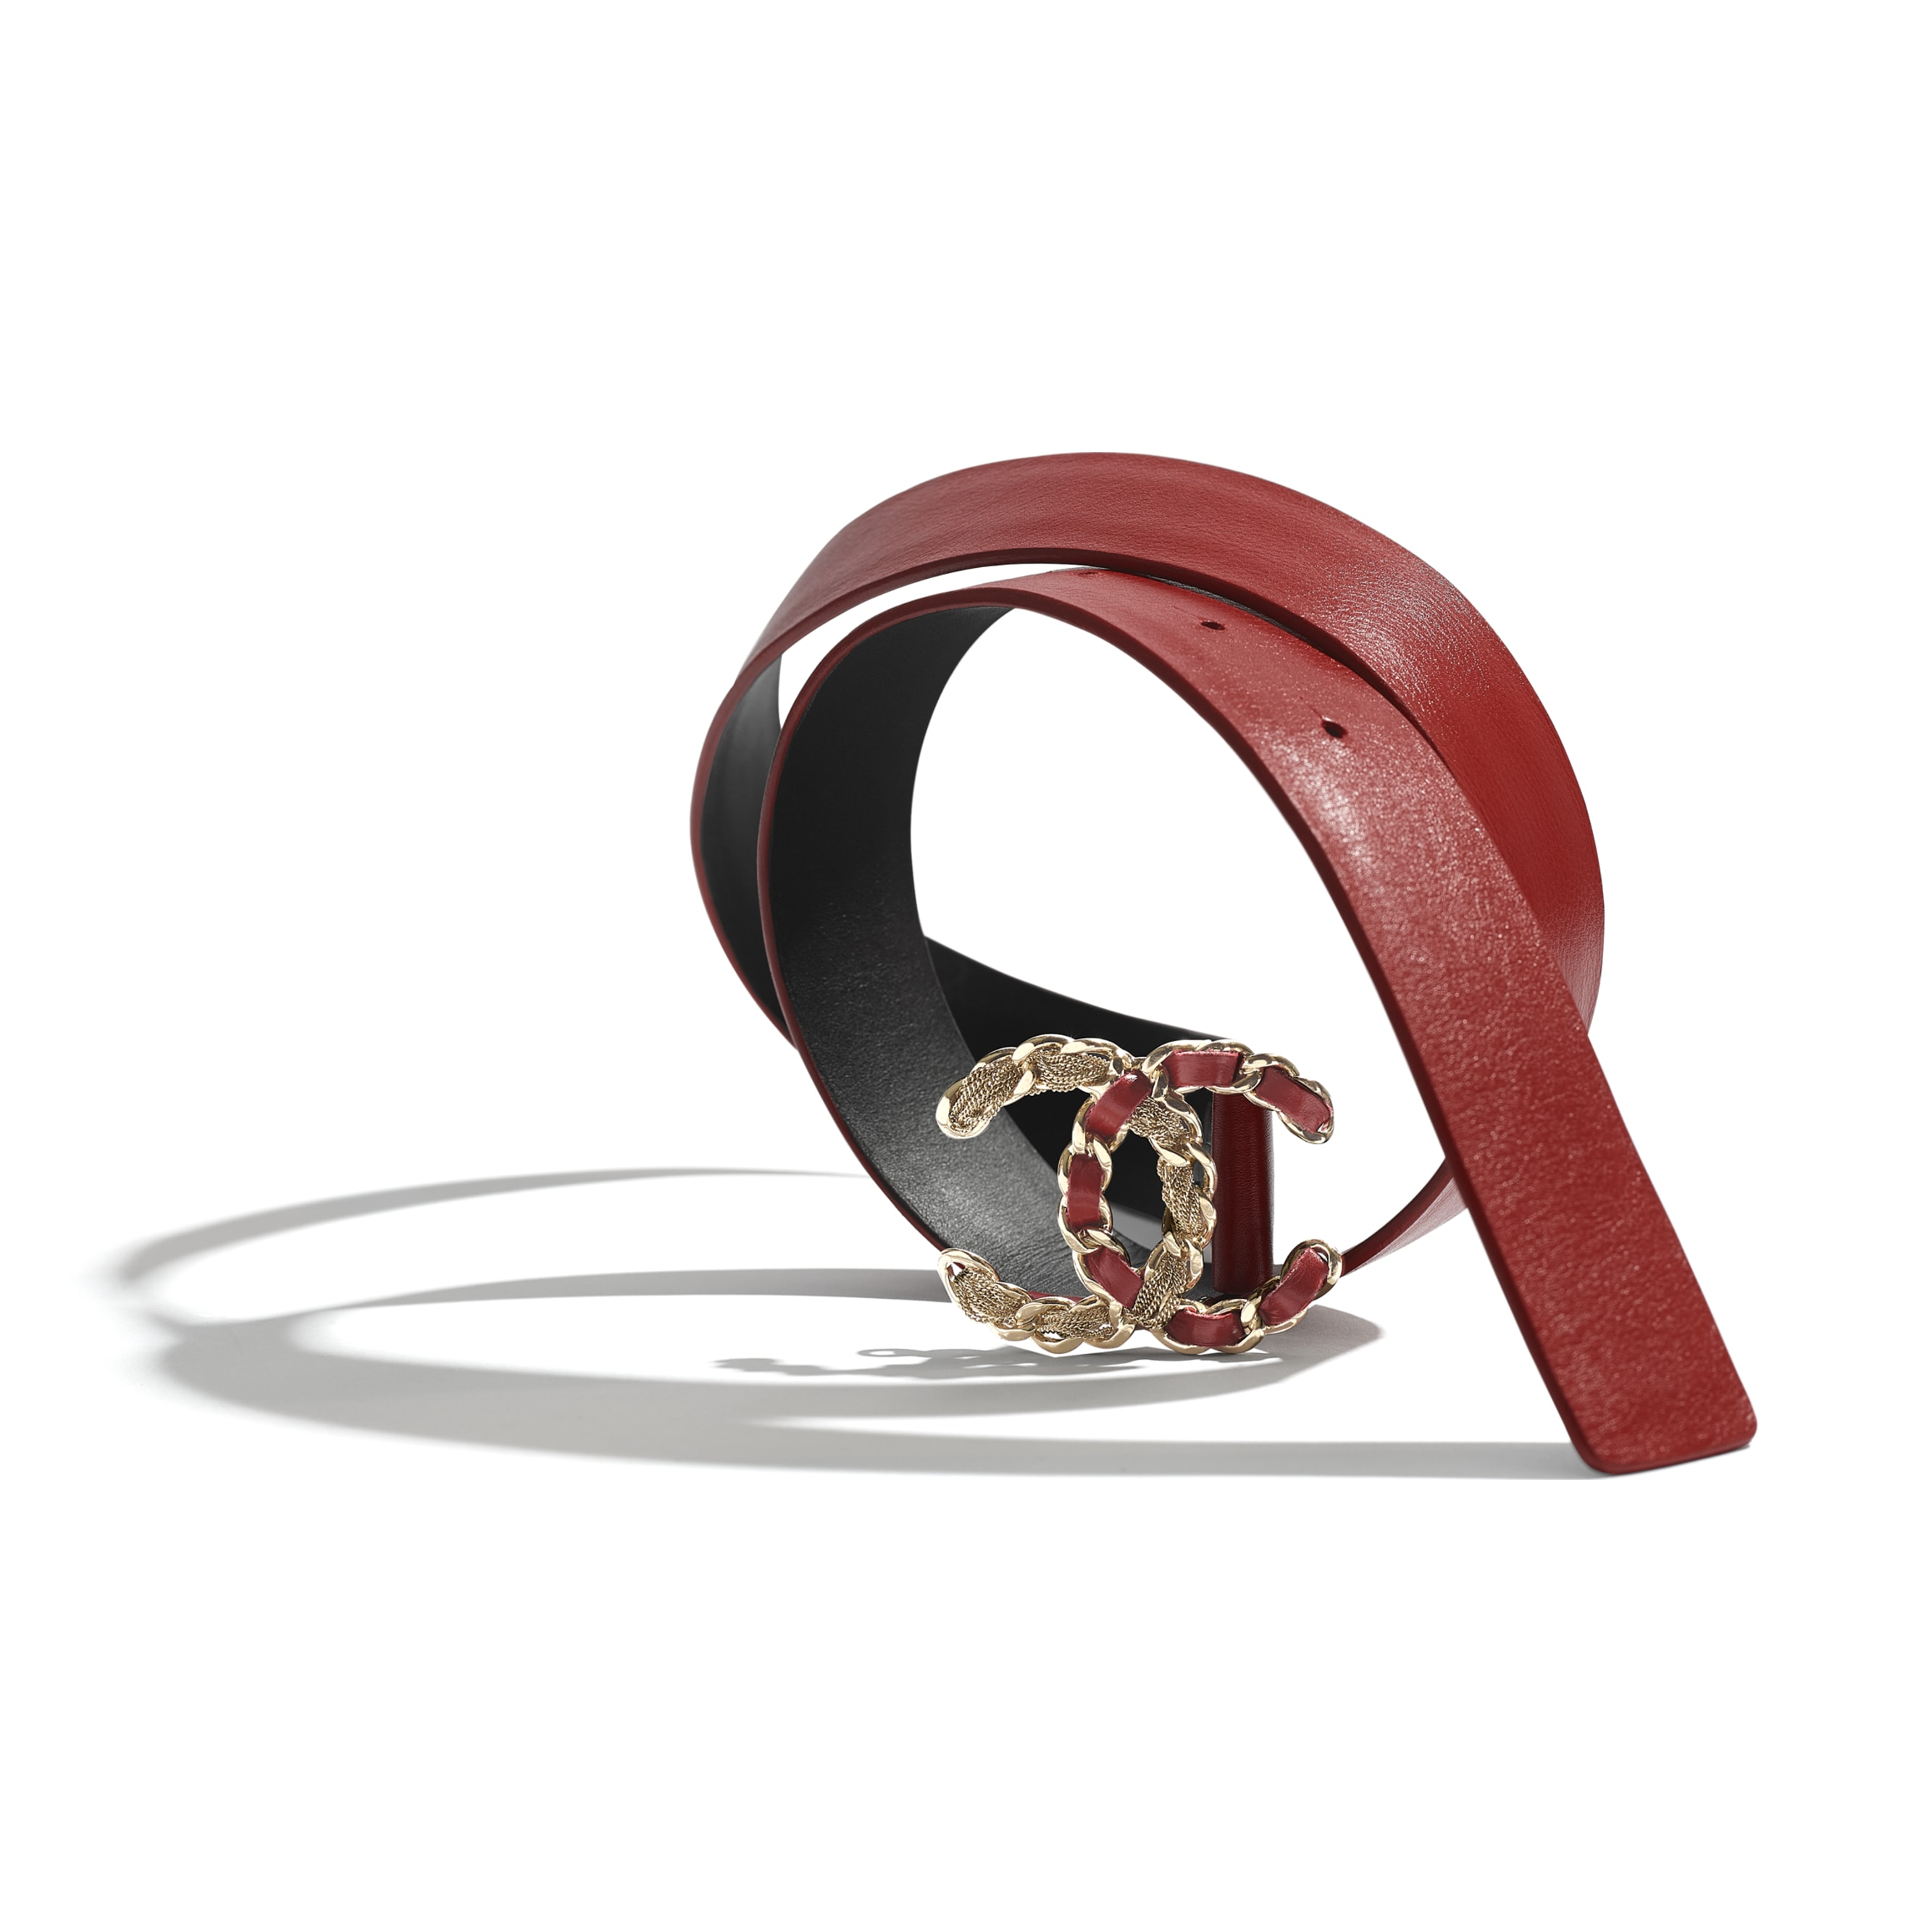 Belt - Red - Calfskin & Gold-Tone Metal - CHANEL - Alternative view - see standard sized version